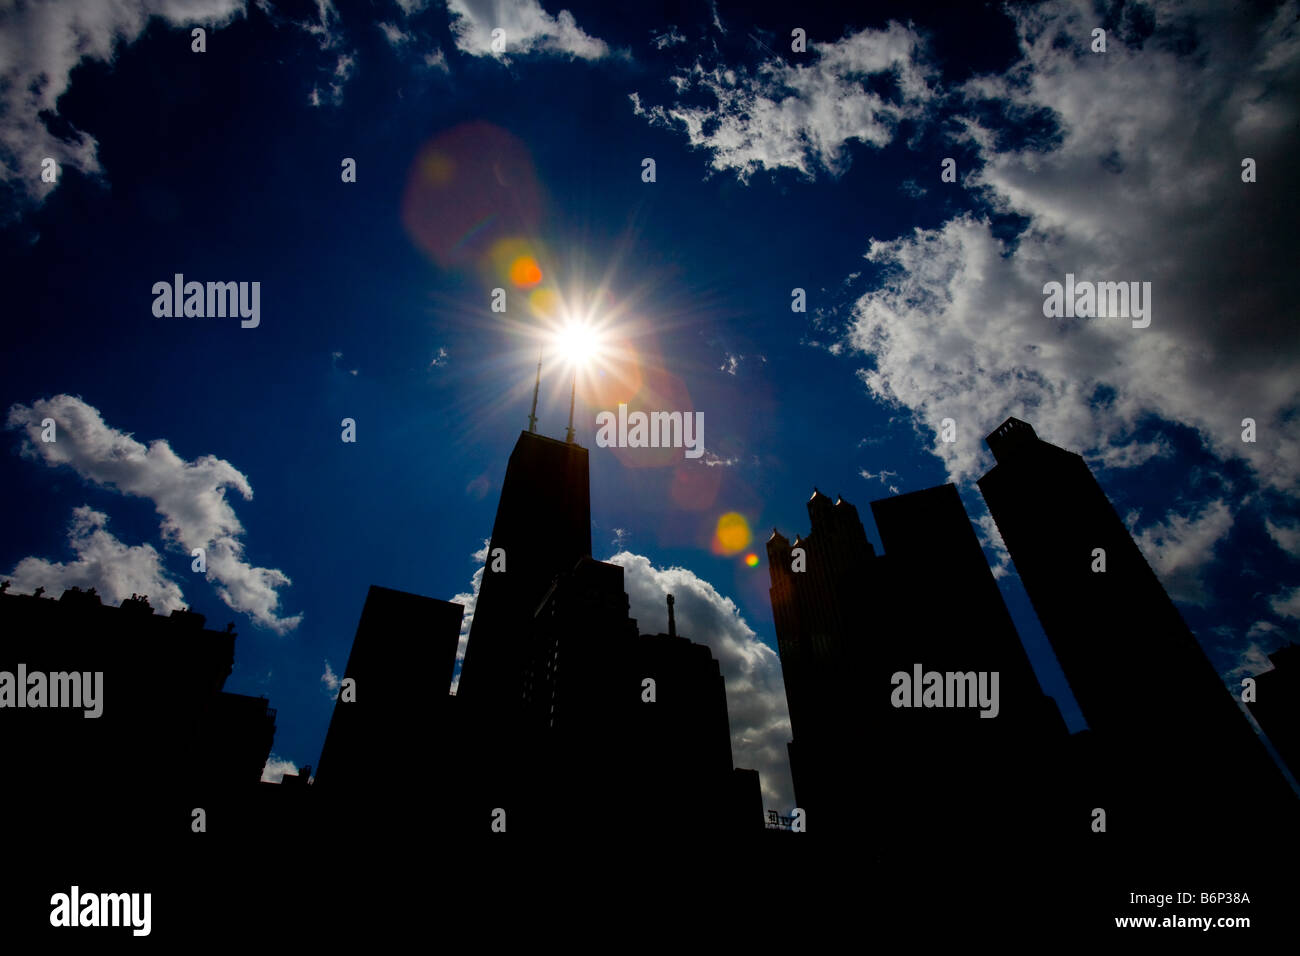 The Chicago Skyline viewed from Cloud Gate, Millennium Park, Chicago, Illinois, USA - Stock Image